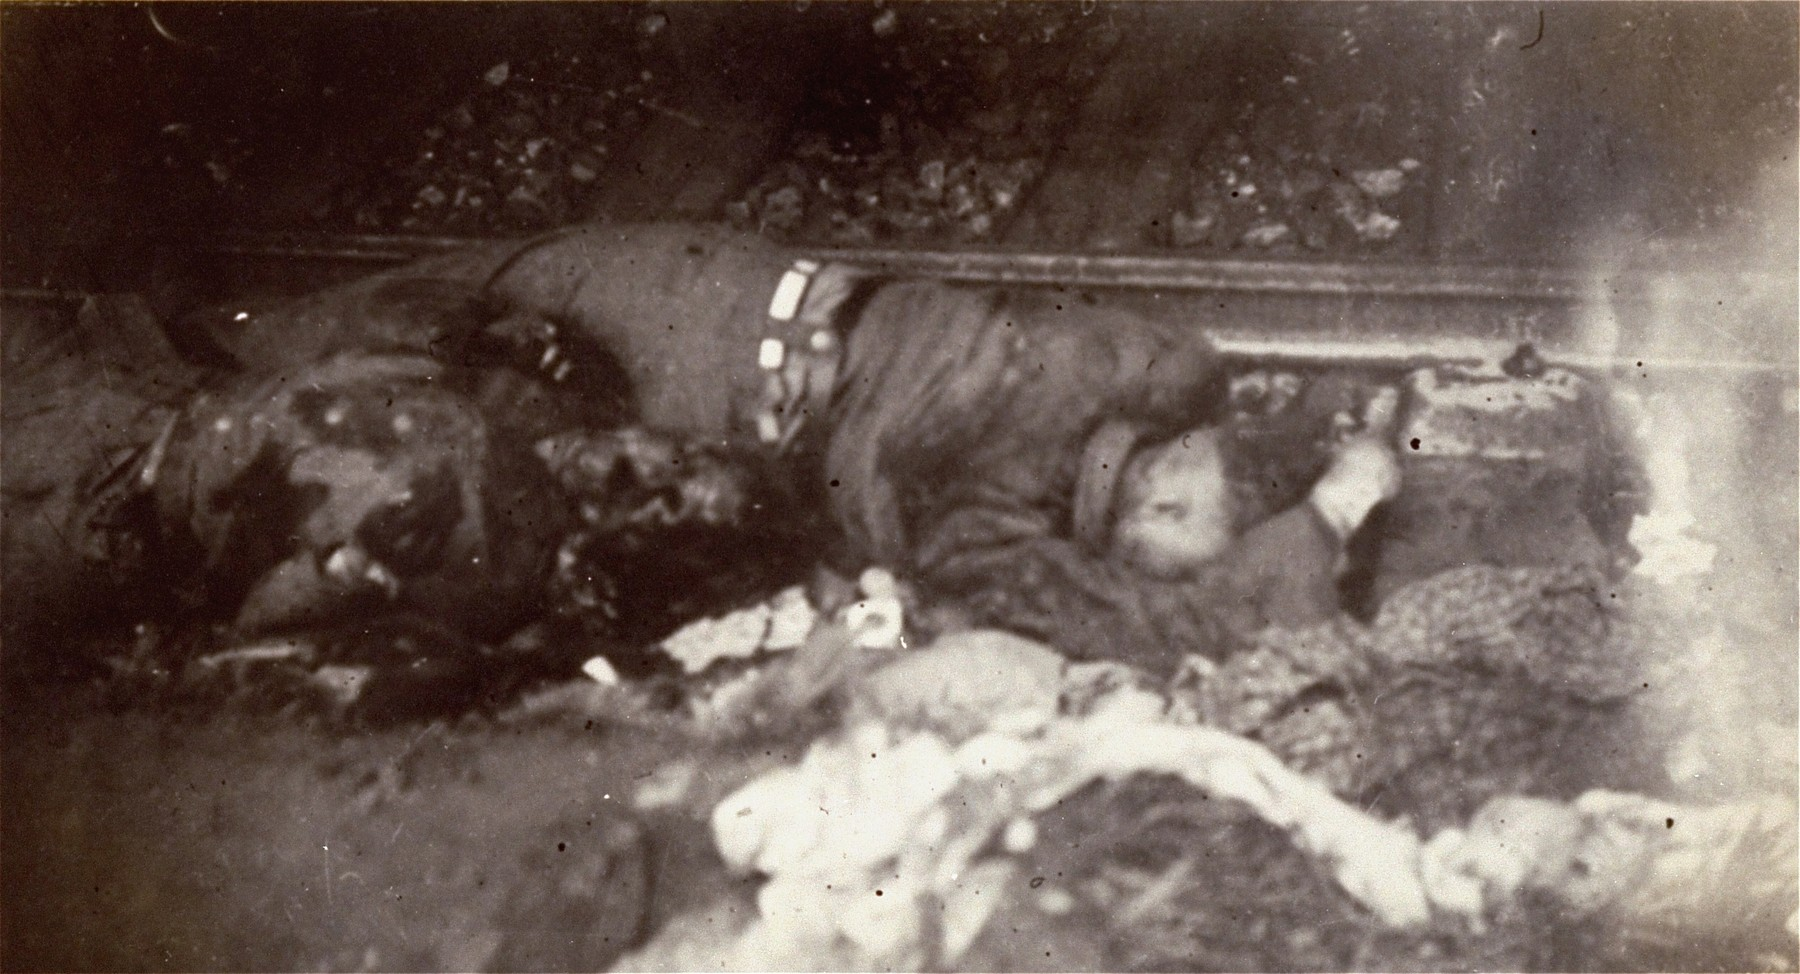 The bodies of SS guards in the newly liberated Dachau concentration camp.